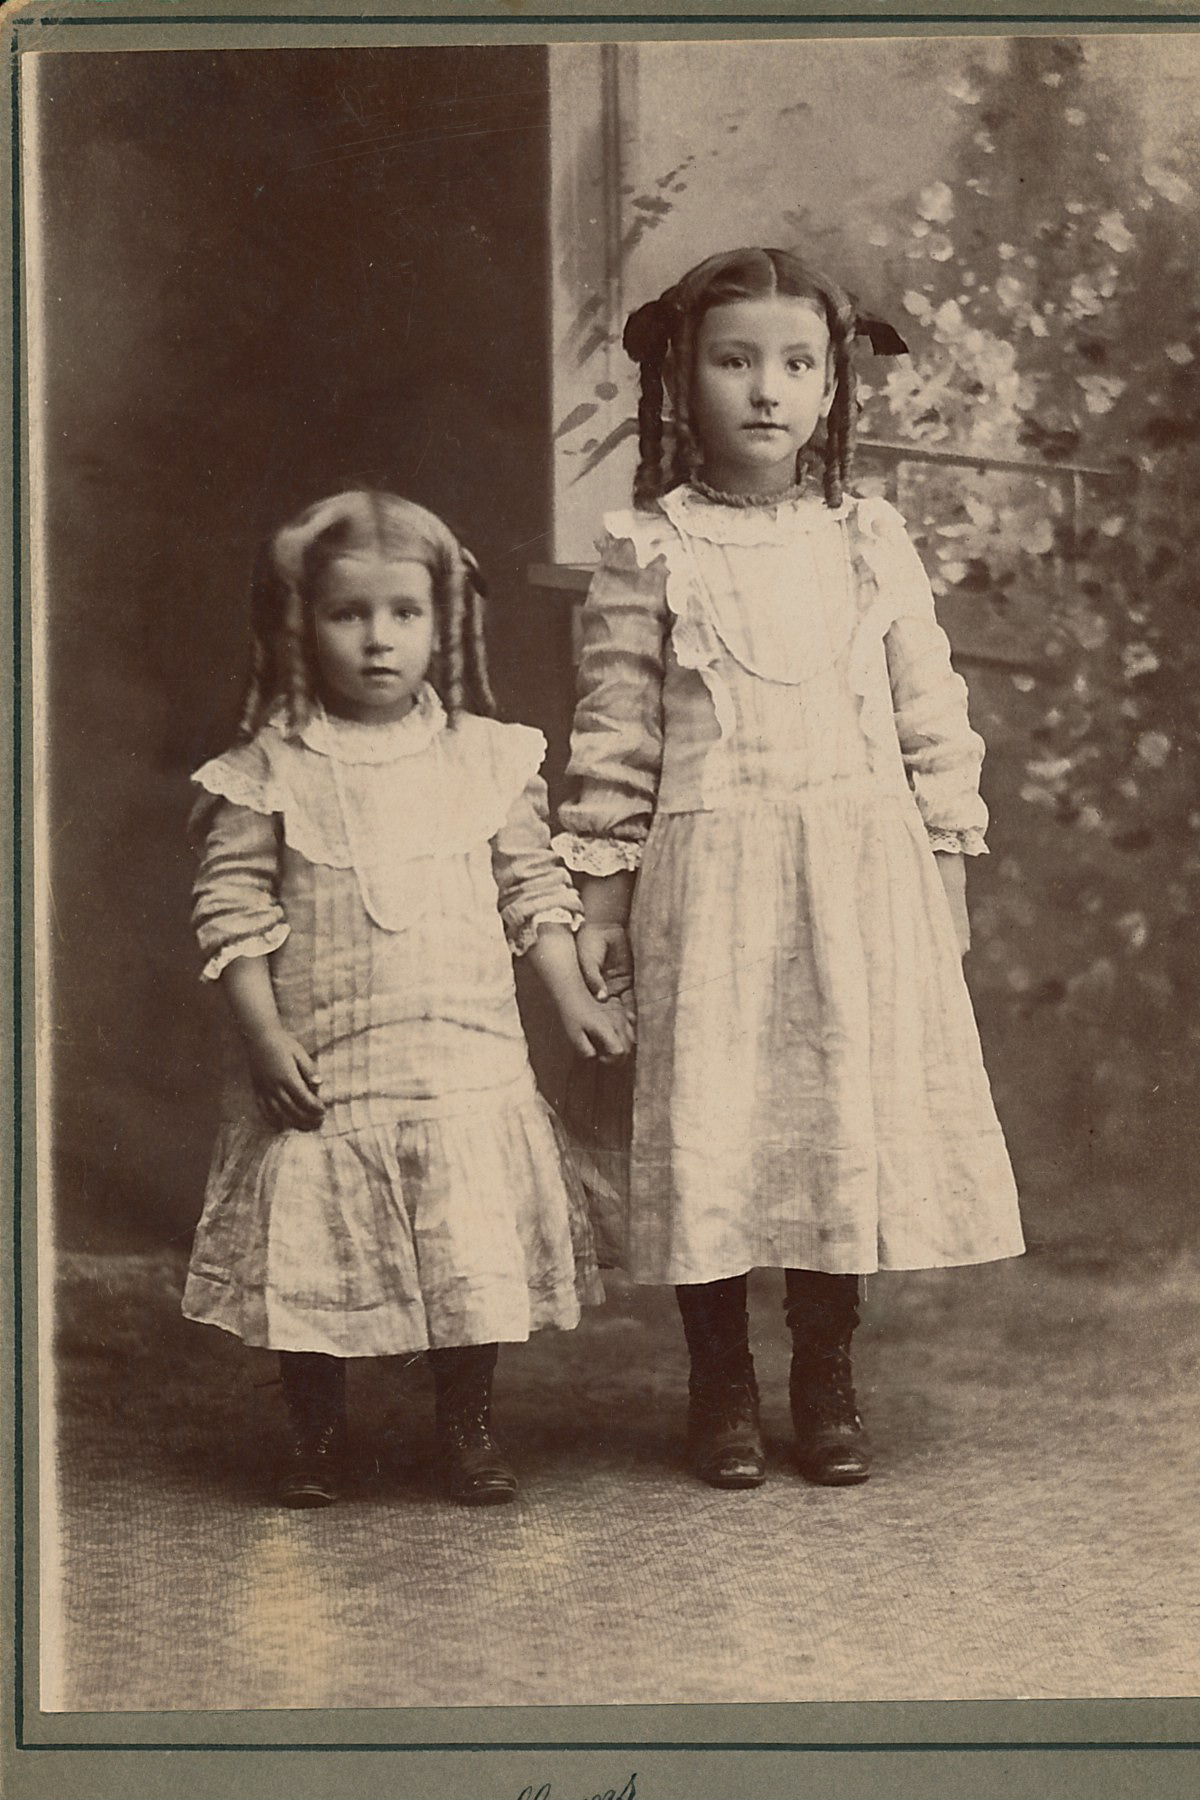 My great-grandmother  Elsie  (right) and her sister Myrtle.